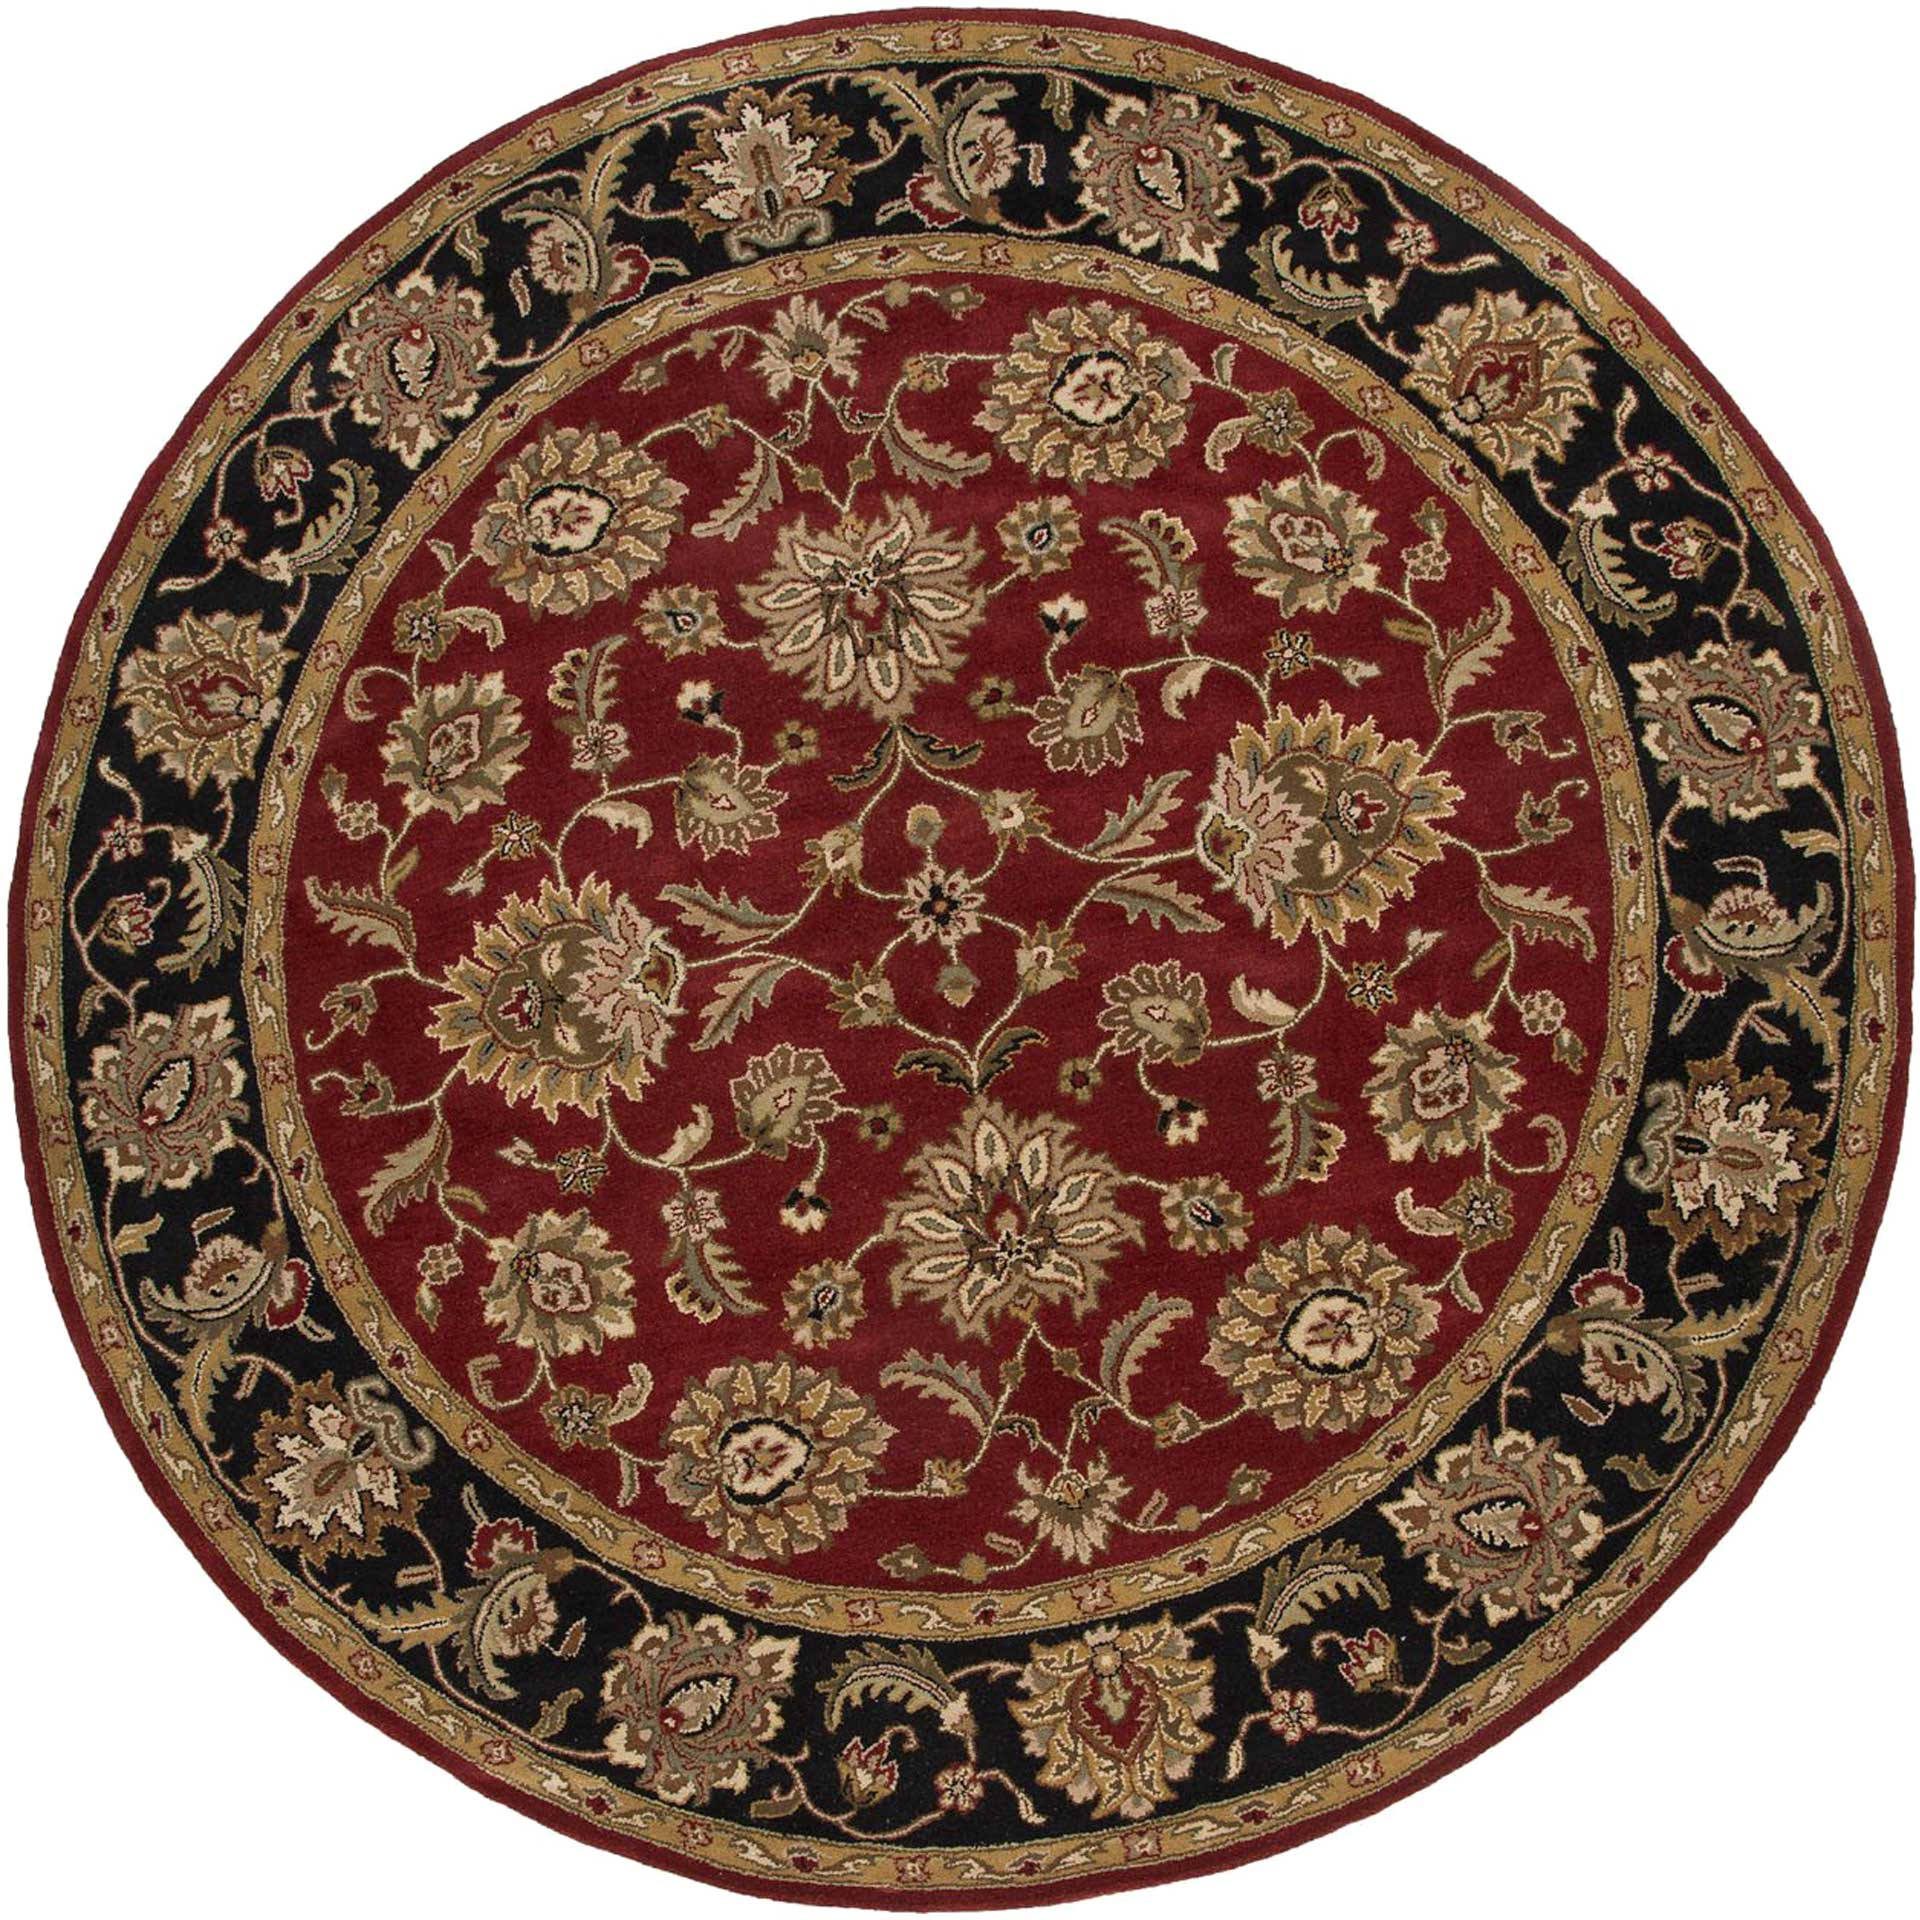 Mythos Anthea Red/Ebony Round Rug